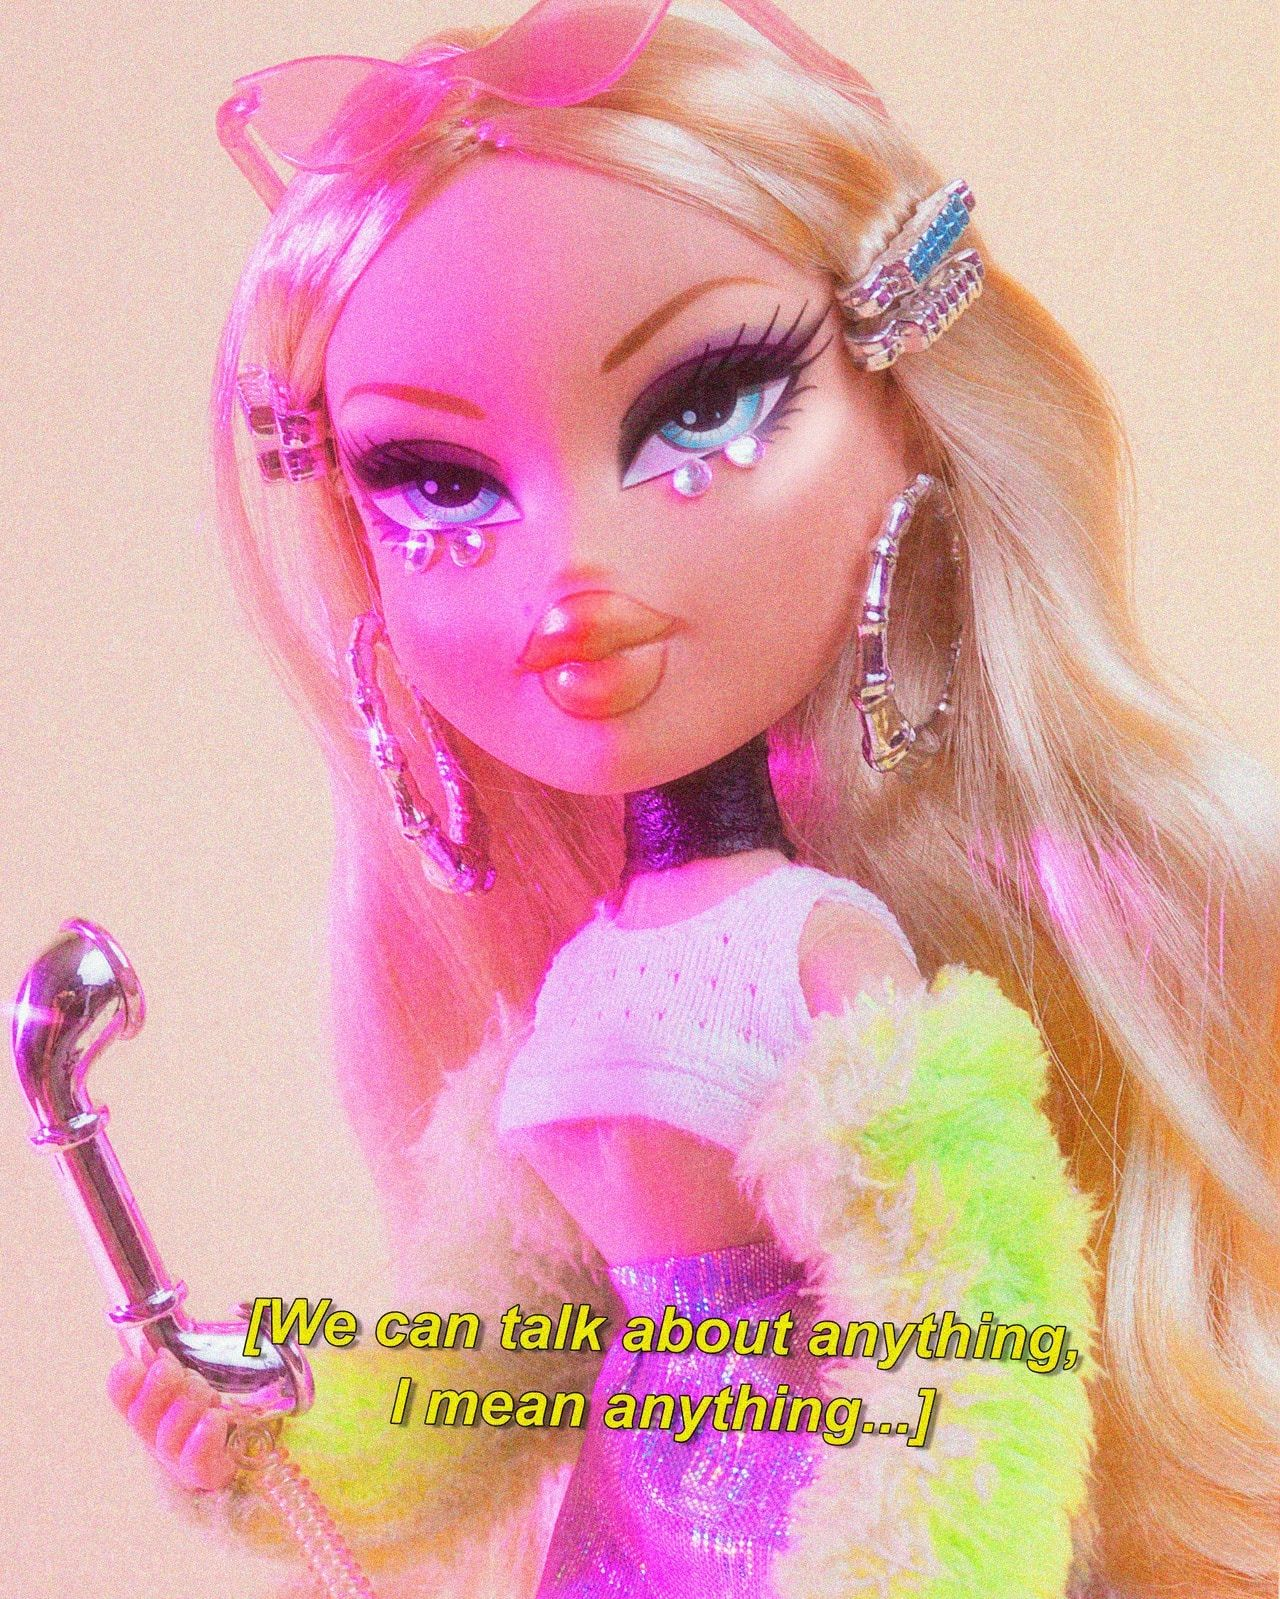 Pin By Shaniahandjavier On Bratz With Images Pink Aesthetic